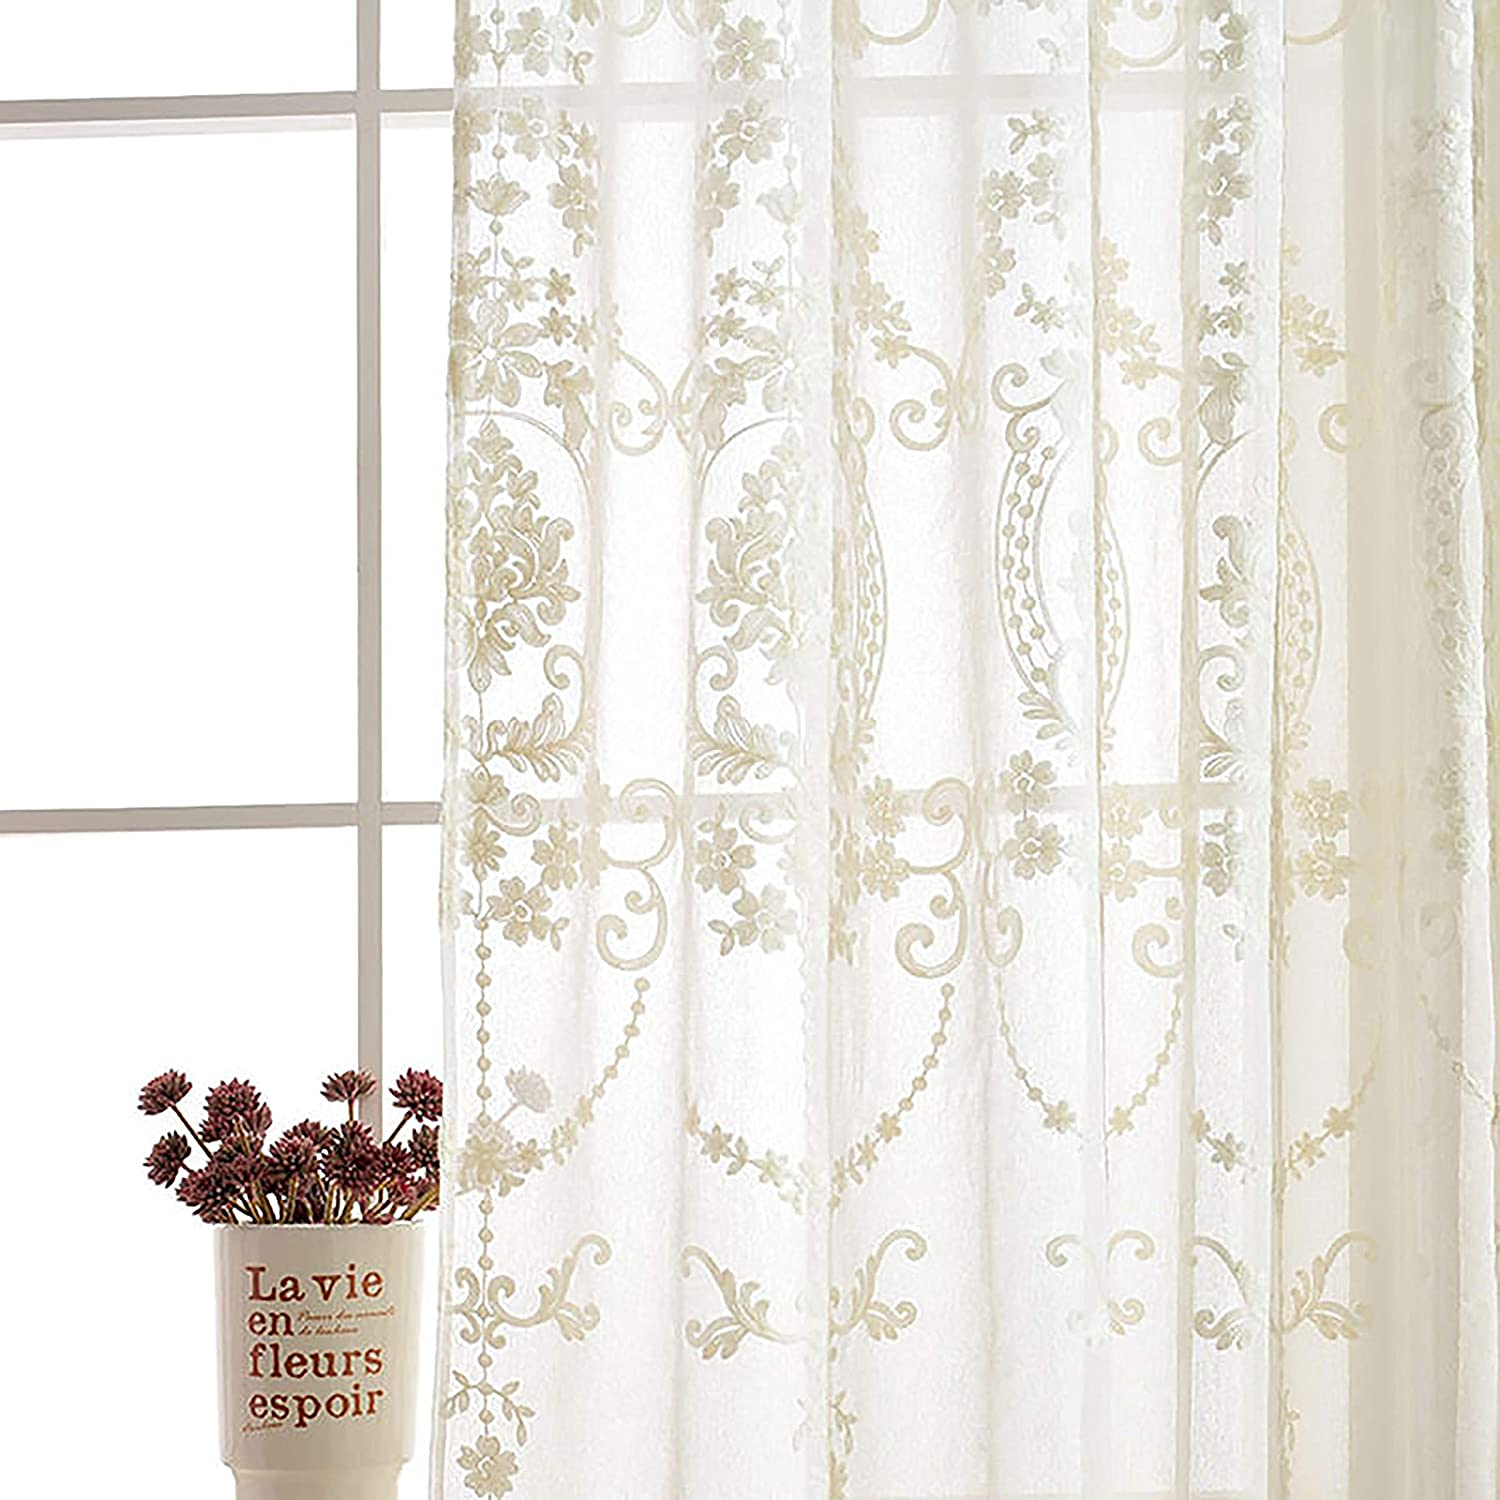 Slow Soul 12 Panels White European Style Sheer Curtain Embroidered Window  Curtains Europe Floral Tulle for Living Room Bedroom with Rod Pocket White  ...